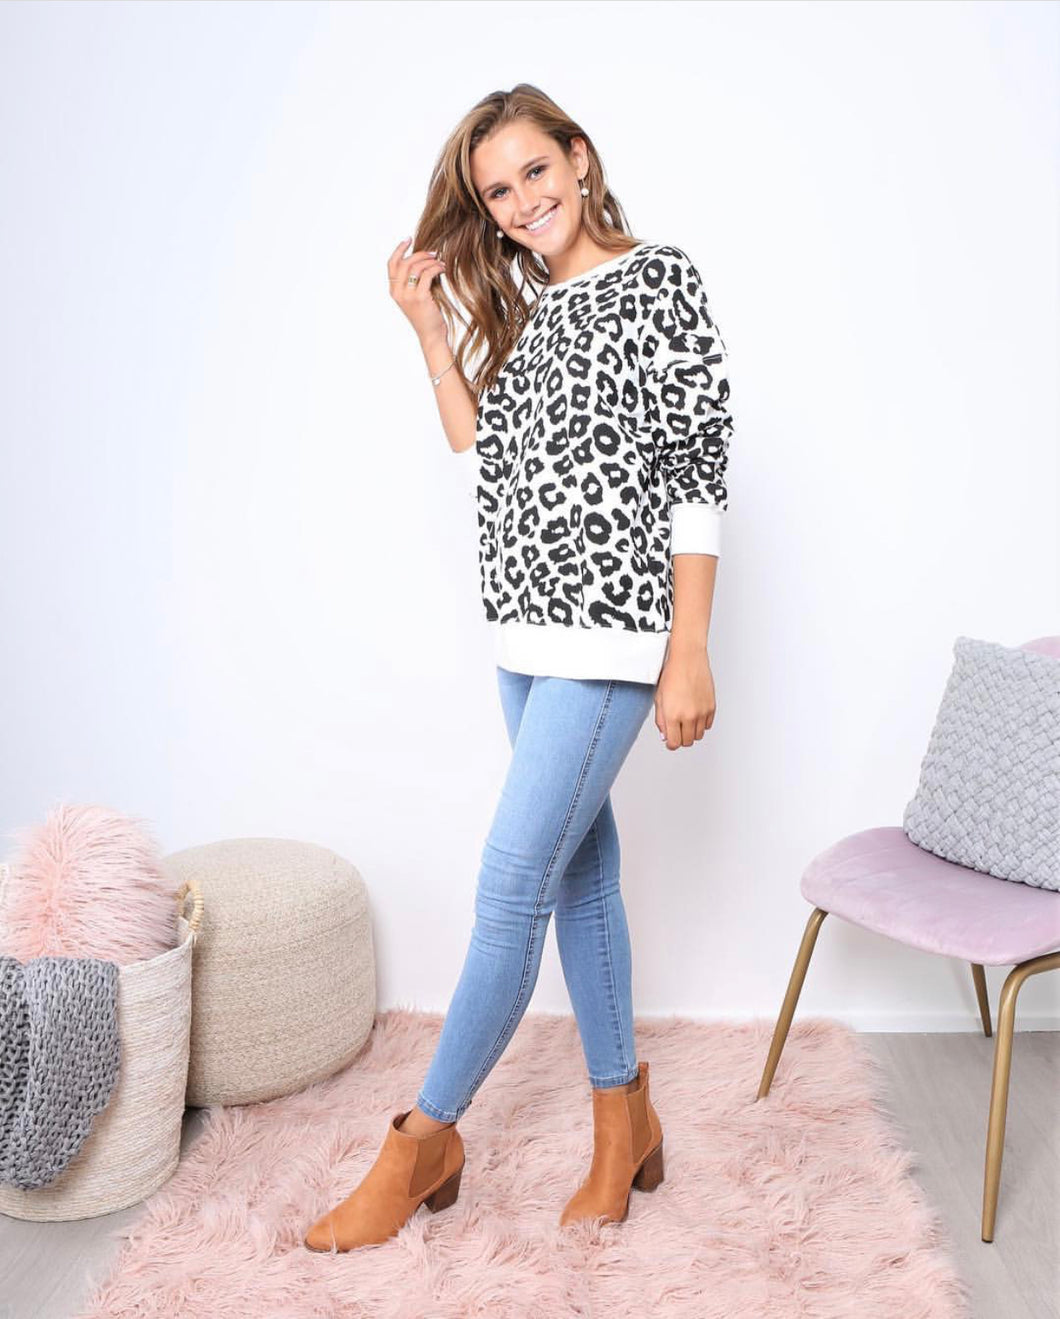 Alicia Animal Print Jumper Alicia Leopard Print Top Leopard Lounge Sweater Basic State